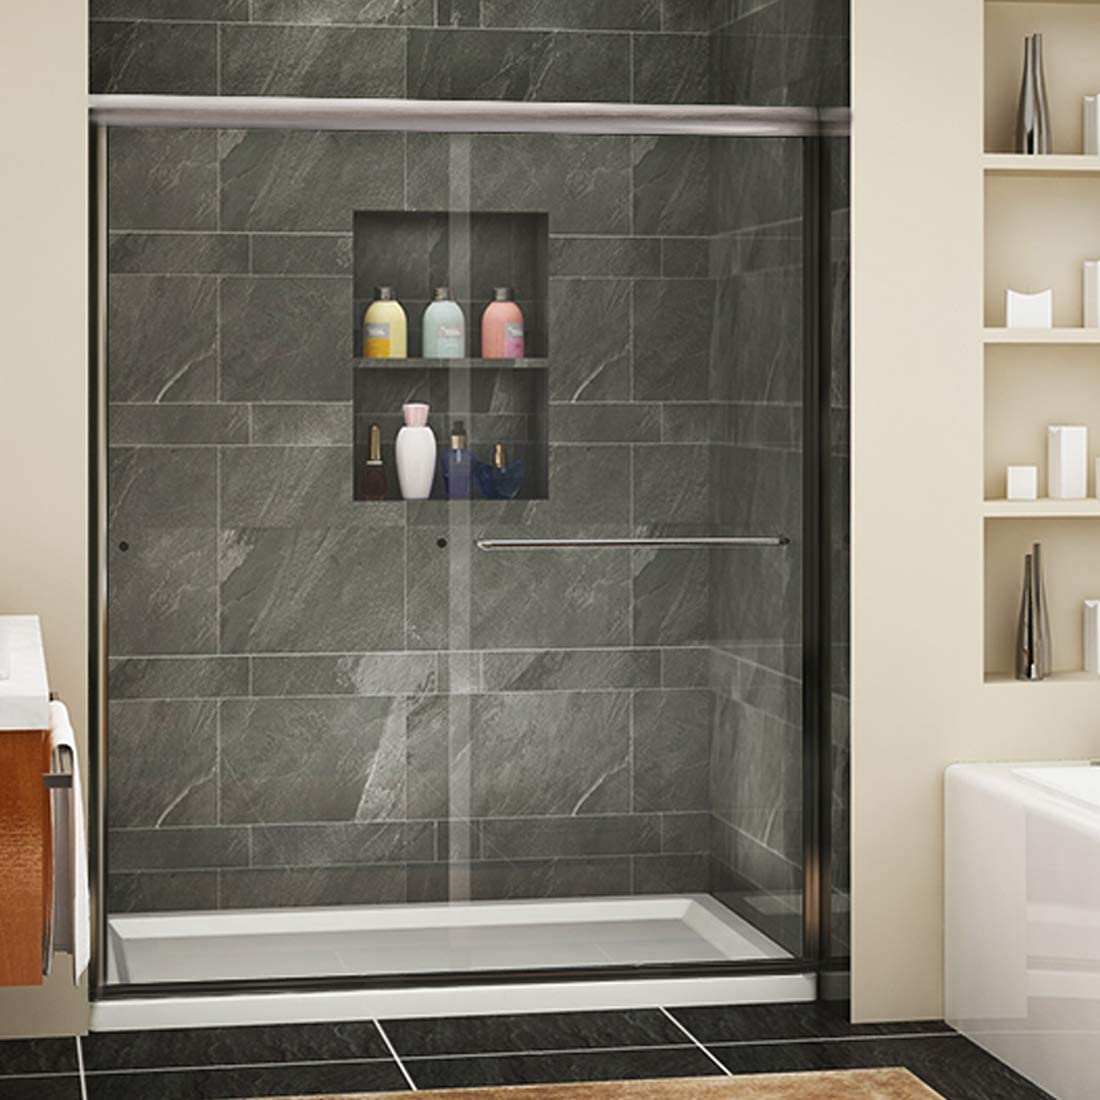 SUNNY SHOWER Framless Shower Door Double Sliding Design Bathroom Shower Enclosure 1 4 Clear Glass, Brushed Nickel Finish, 60 x 72